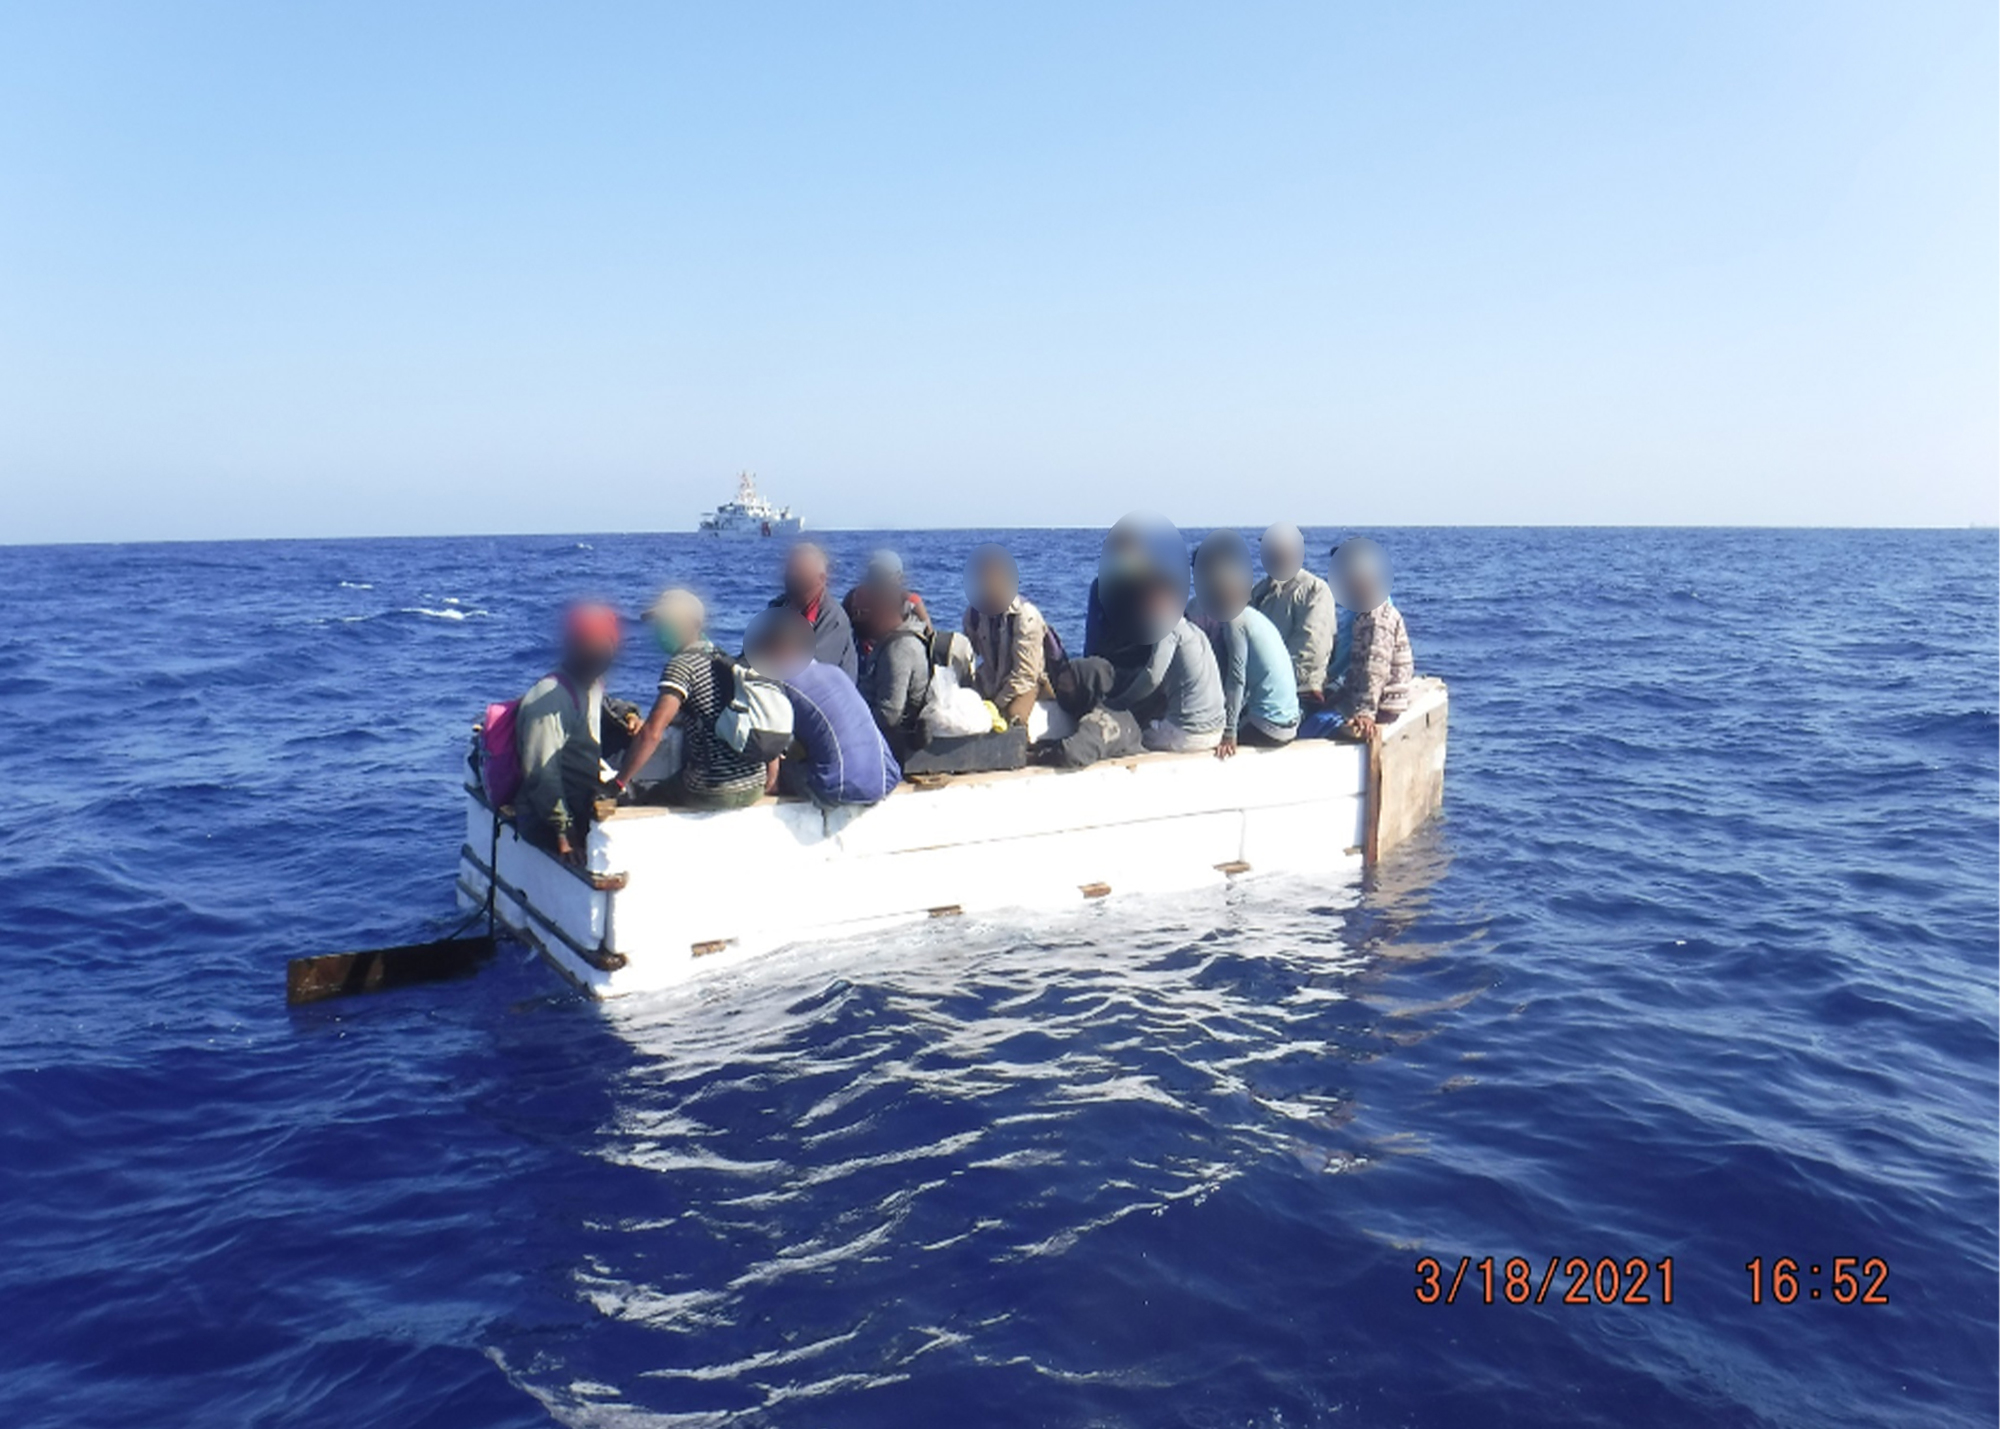 Coast Guard repatriates 17 migrants to Cuba